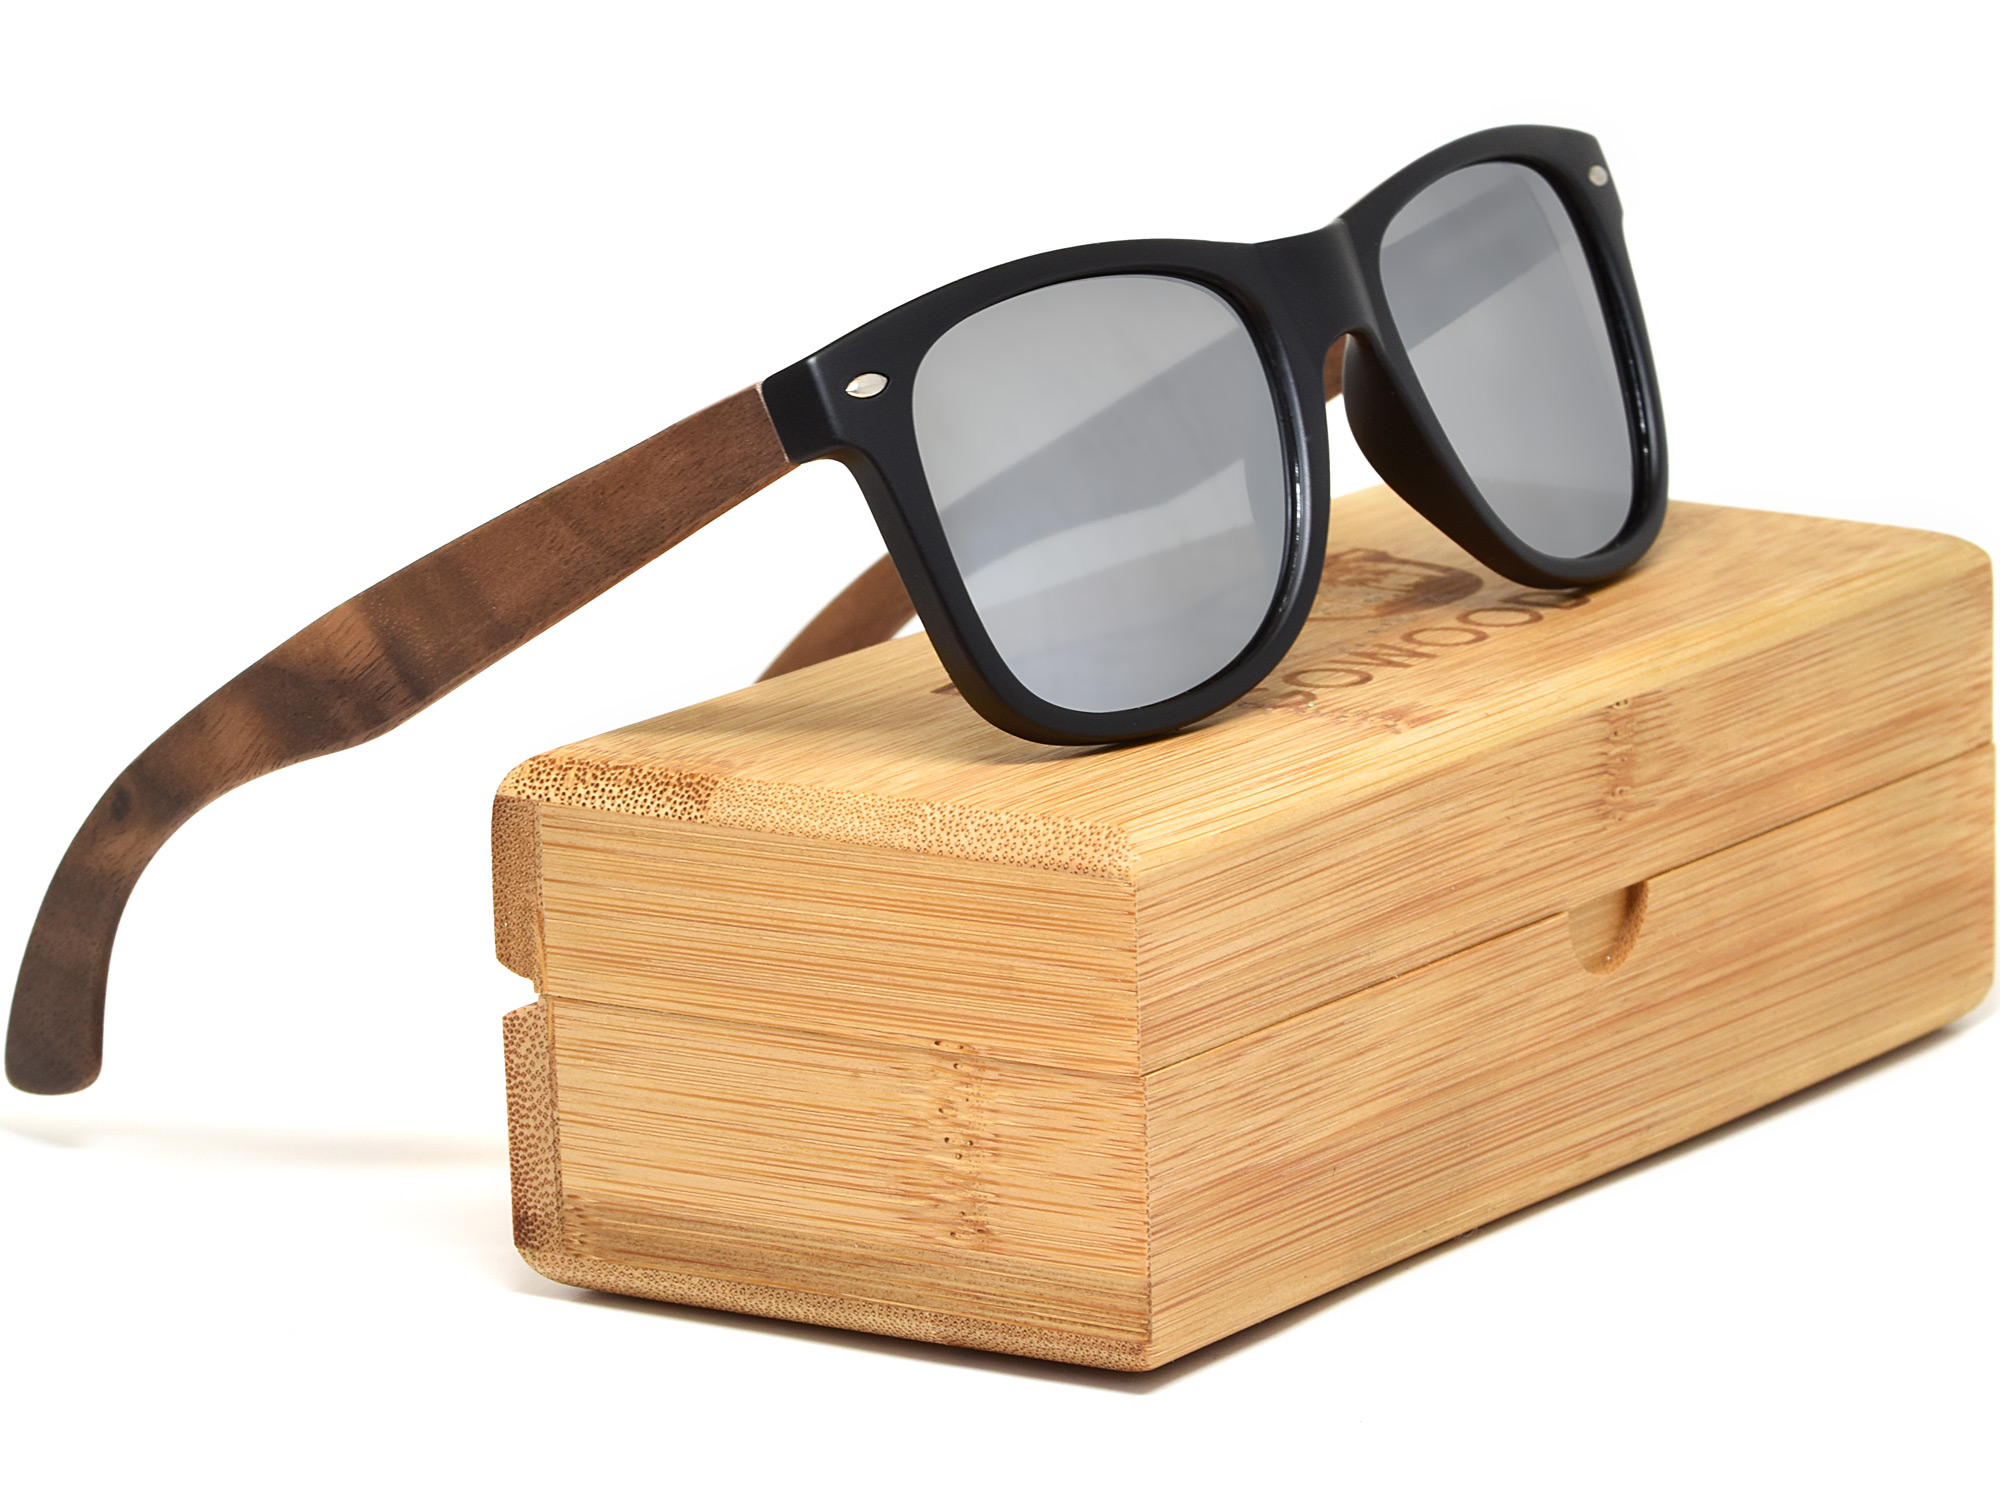 Walnut wood sunglasses with silver mirrored lenses set